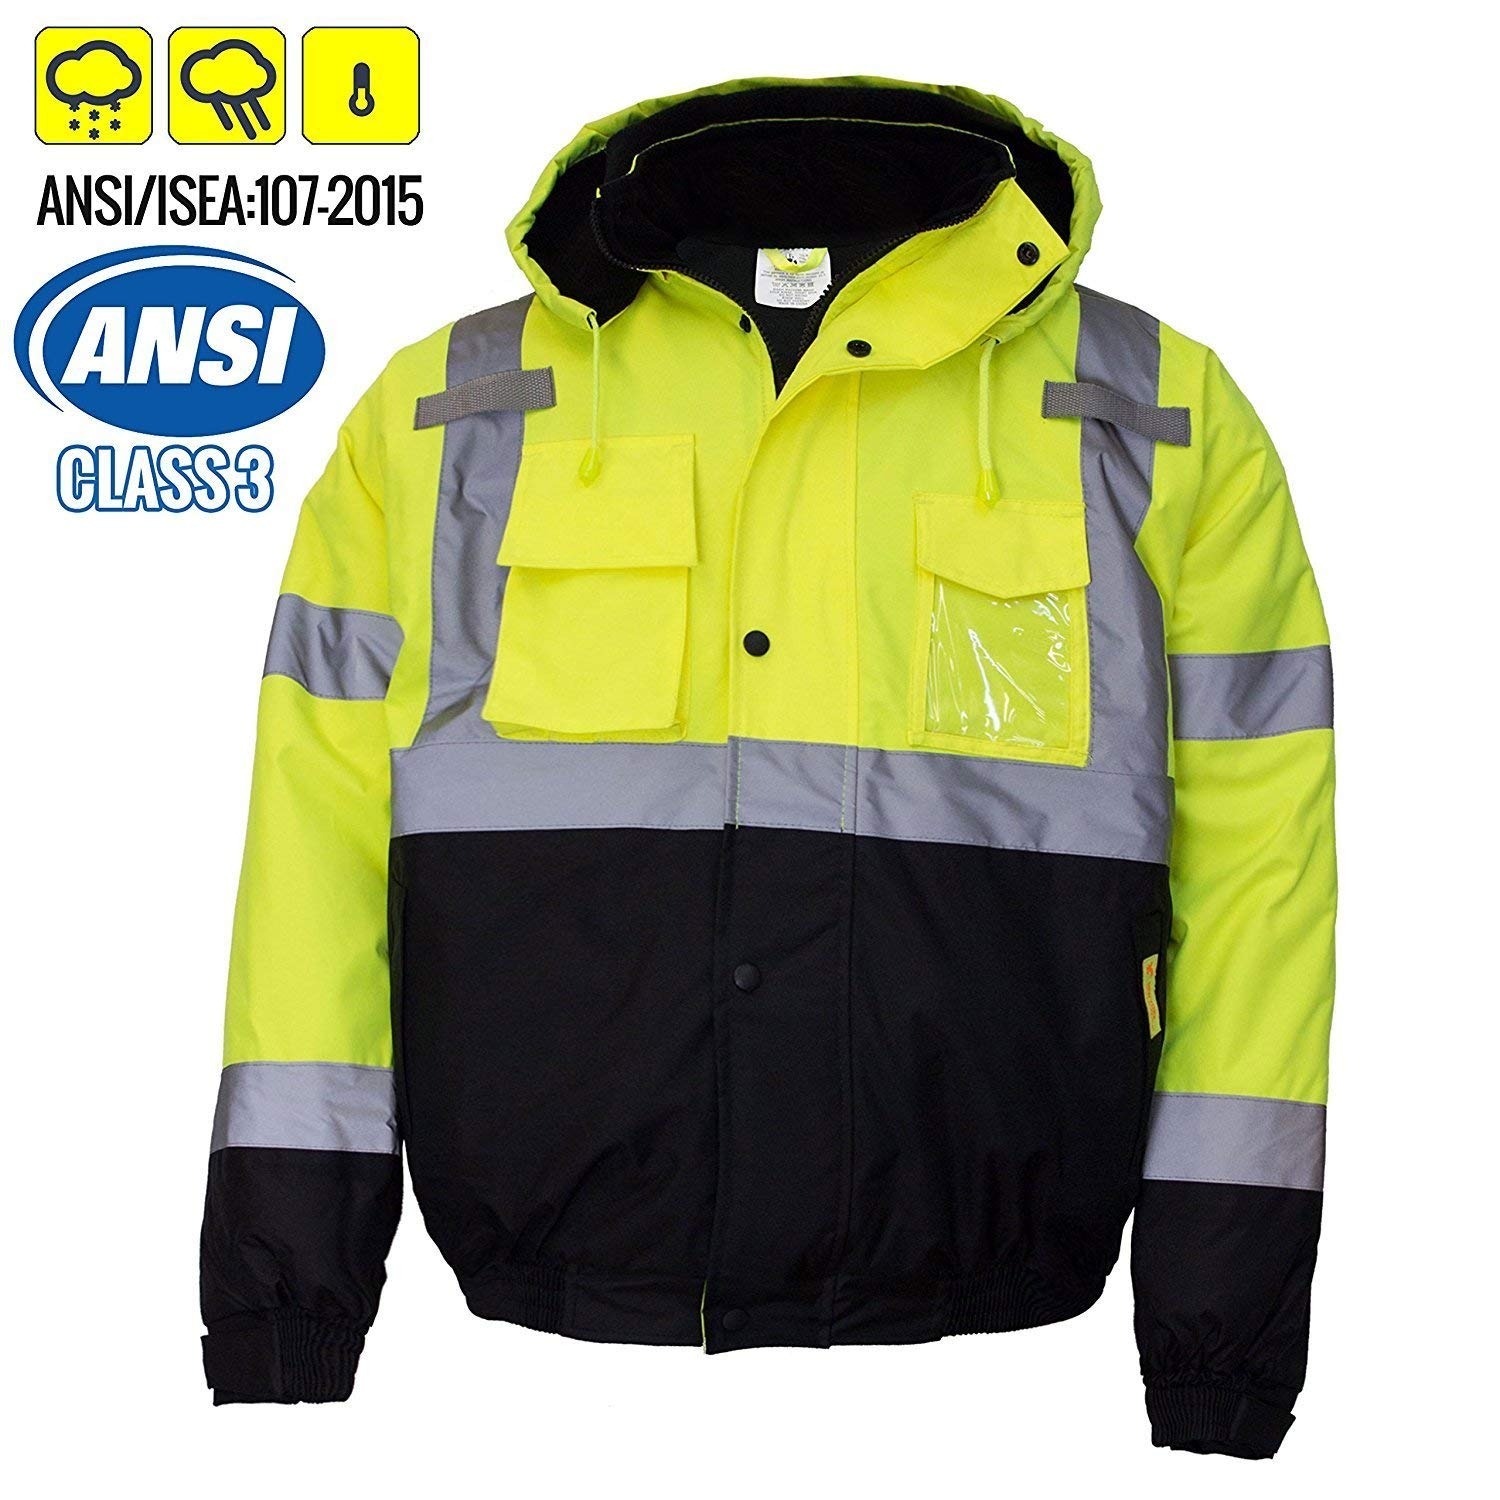 New York Hi-Viz Workwear WJ9012-XL Men's ANSI Class 3 High Visibility Bomber Safety Jacket, Waterproof (Extra Large, Lime) by New York Hi-Viz Workwear